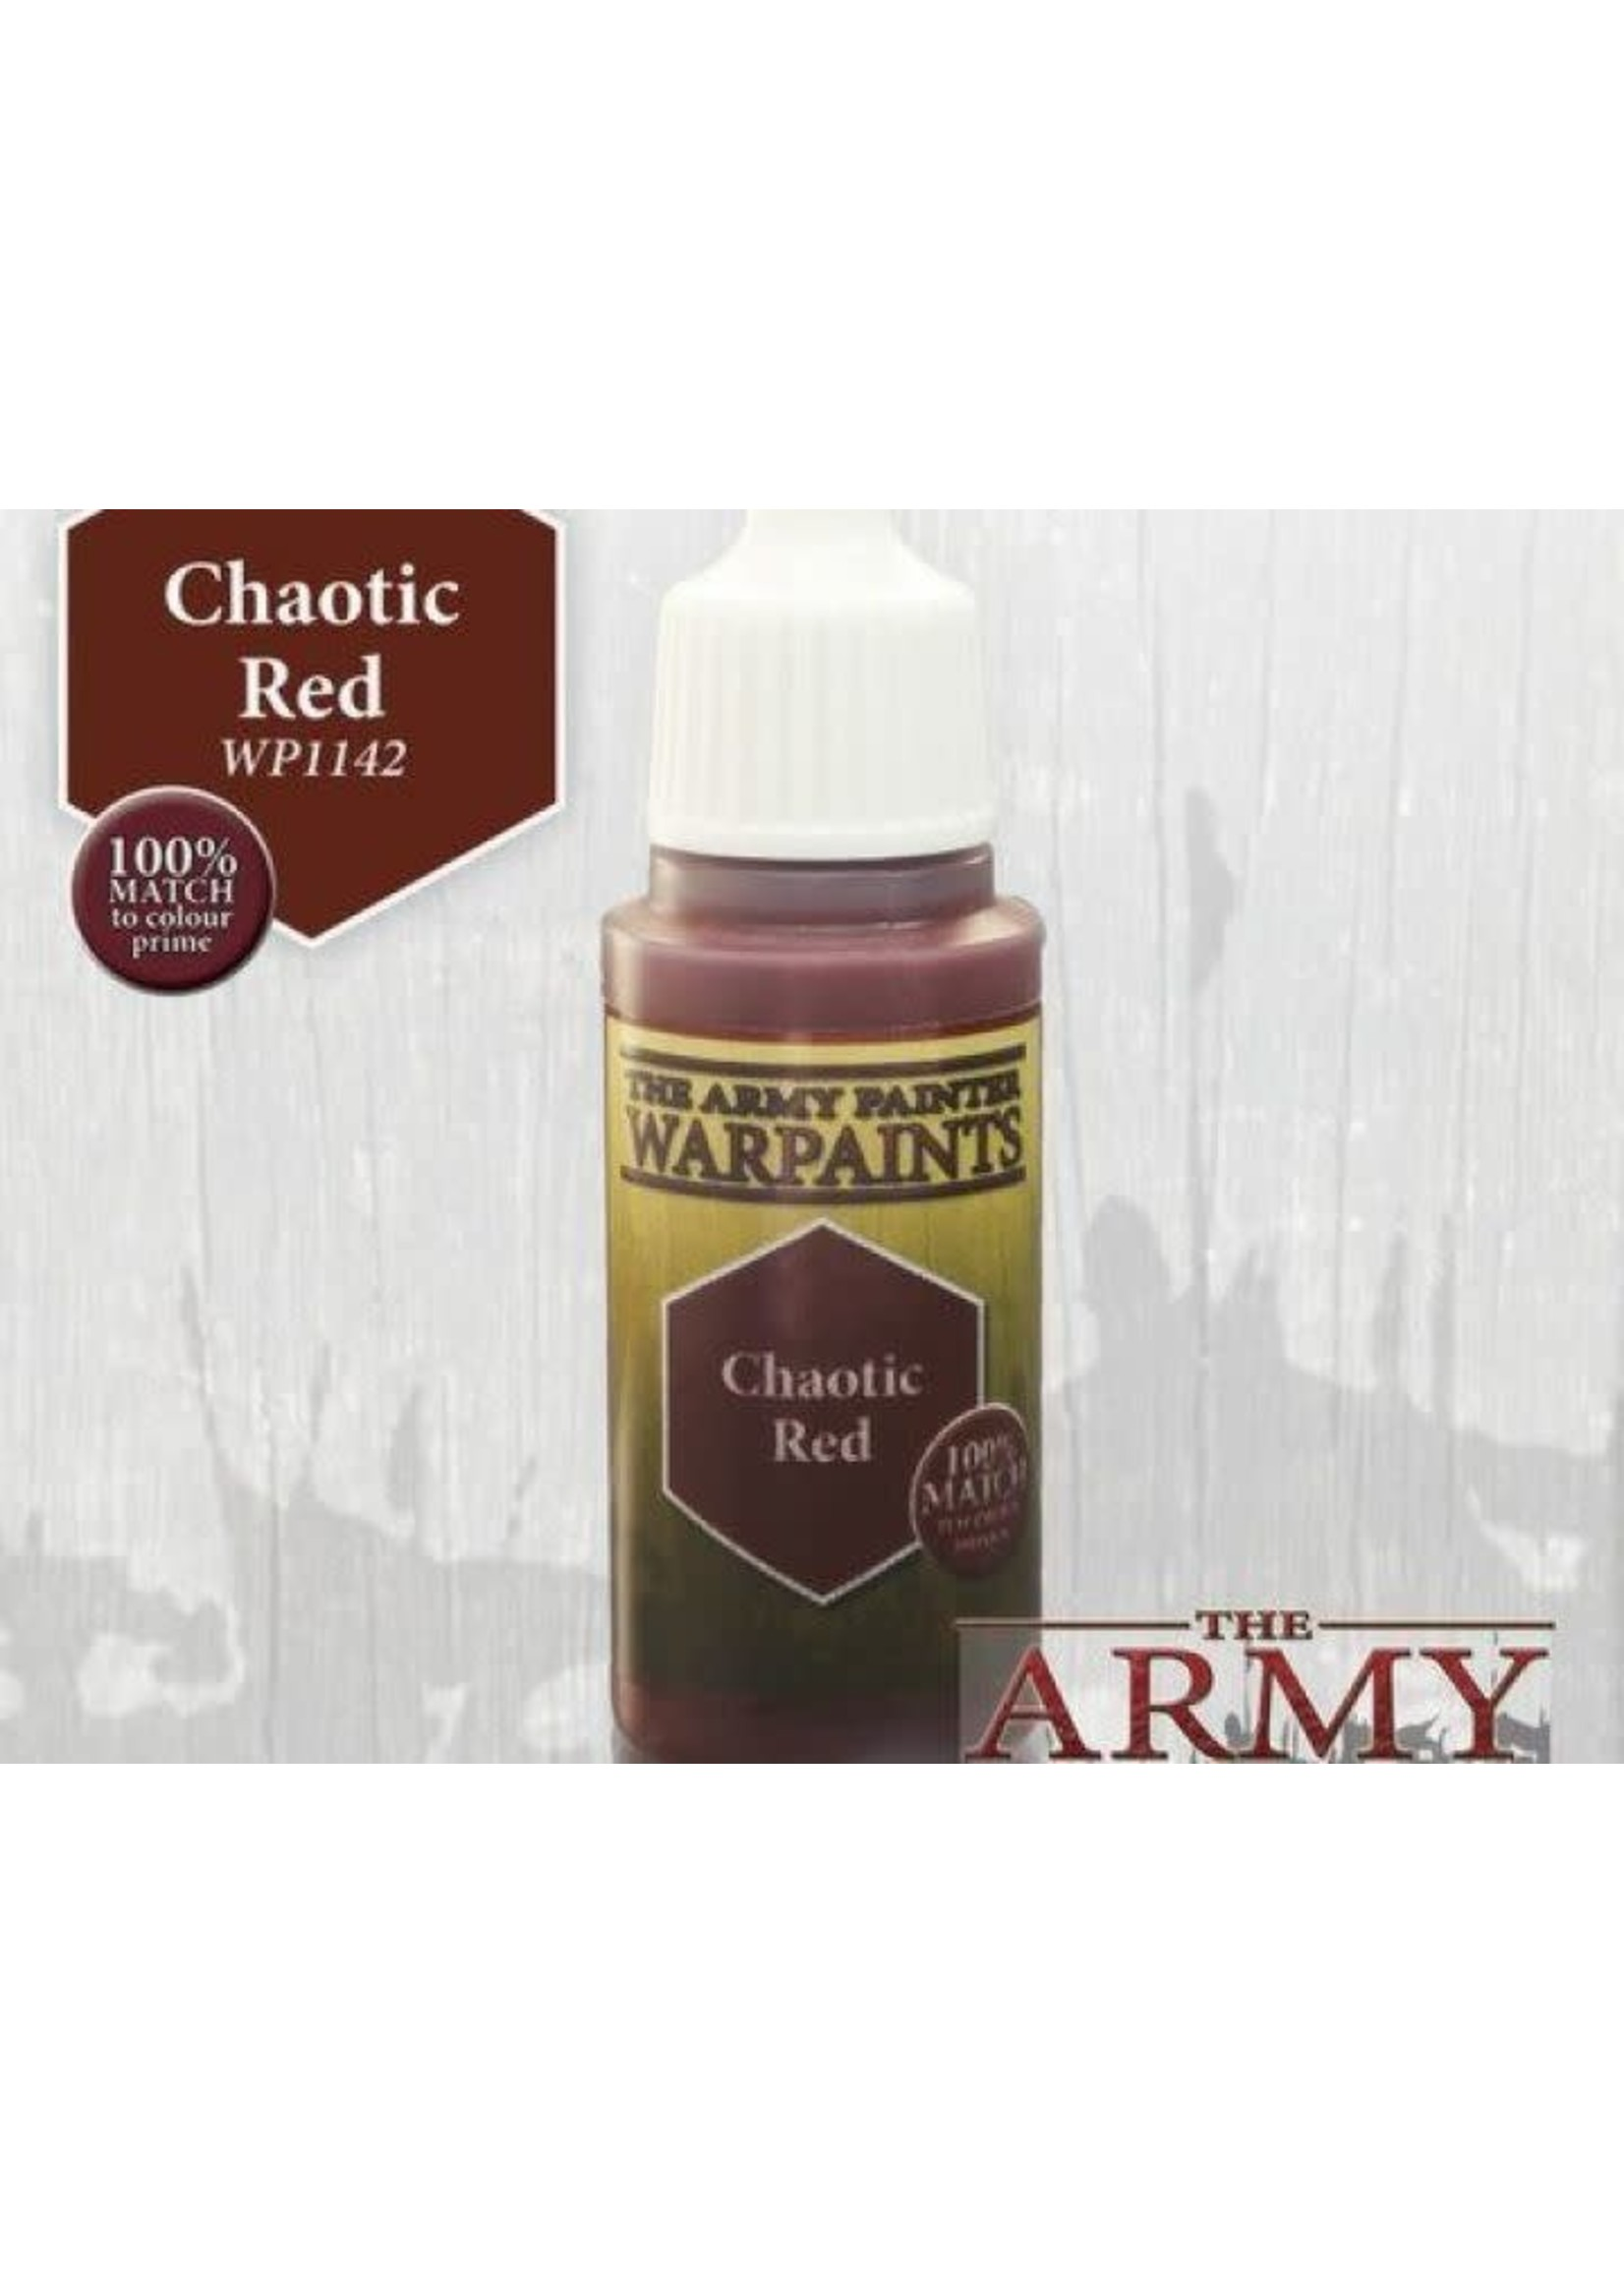 Army Painter Warpaints - Chaotic Red